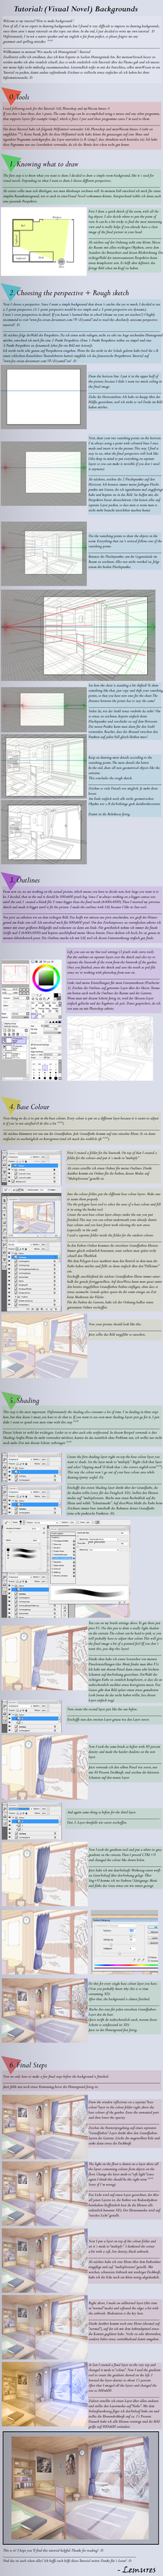 Visual Novel \/ Anime Background Tutorial by Lemur3s on DeviantArt